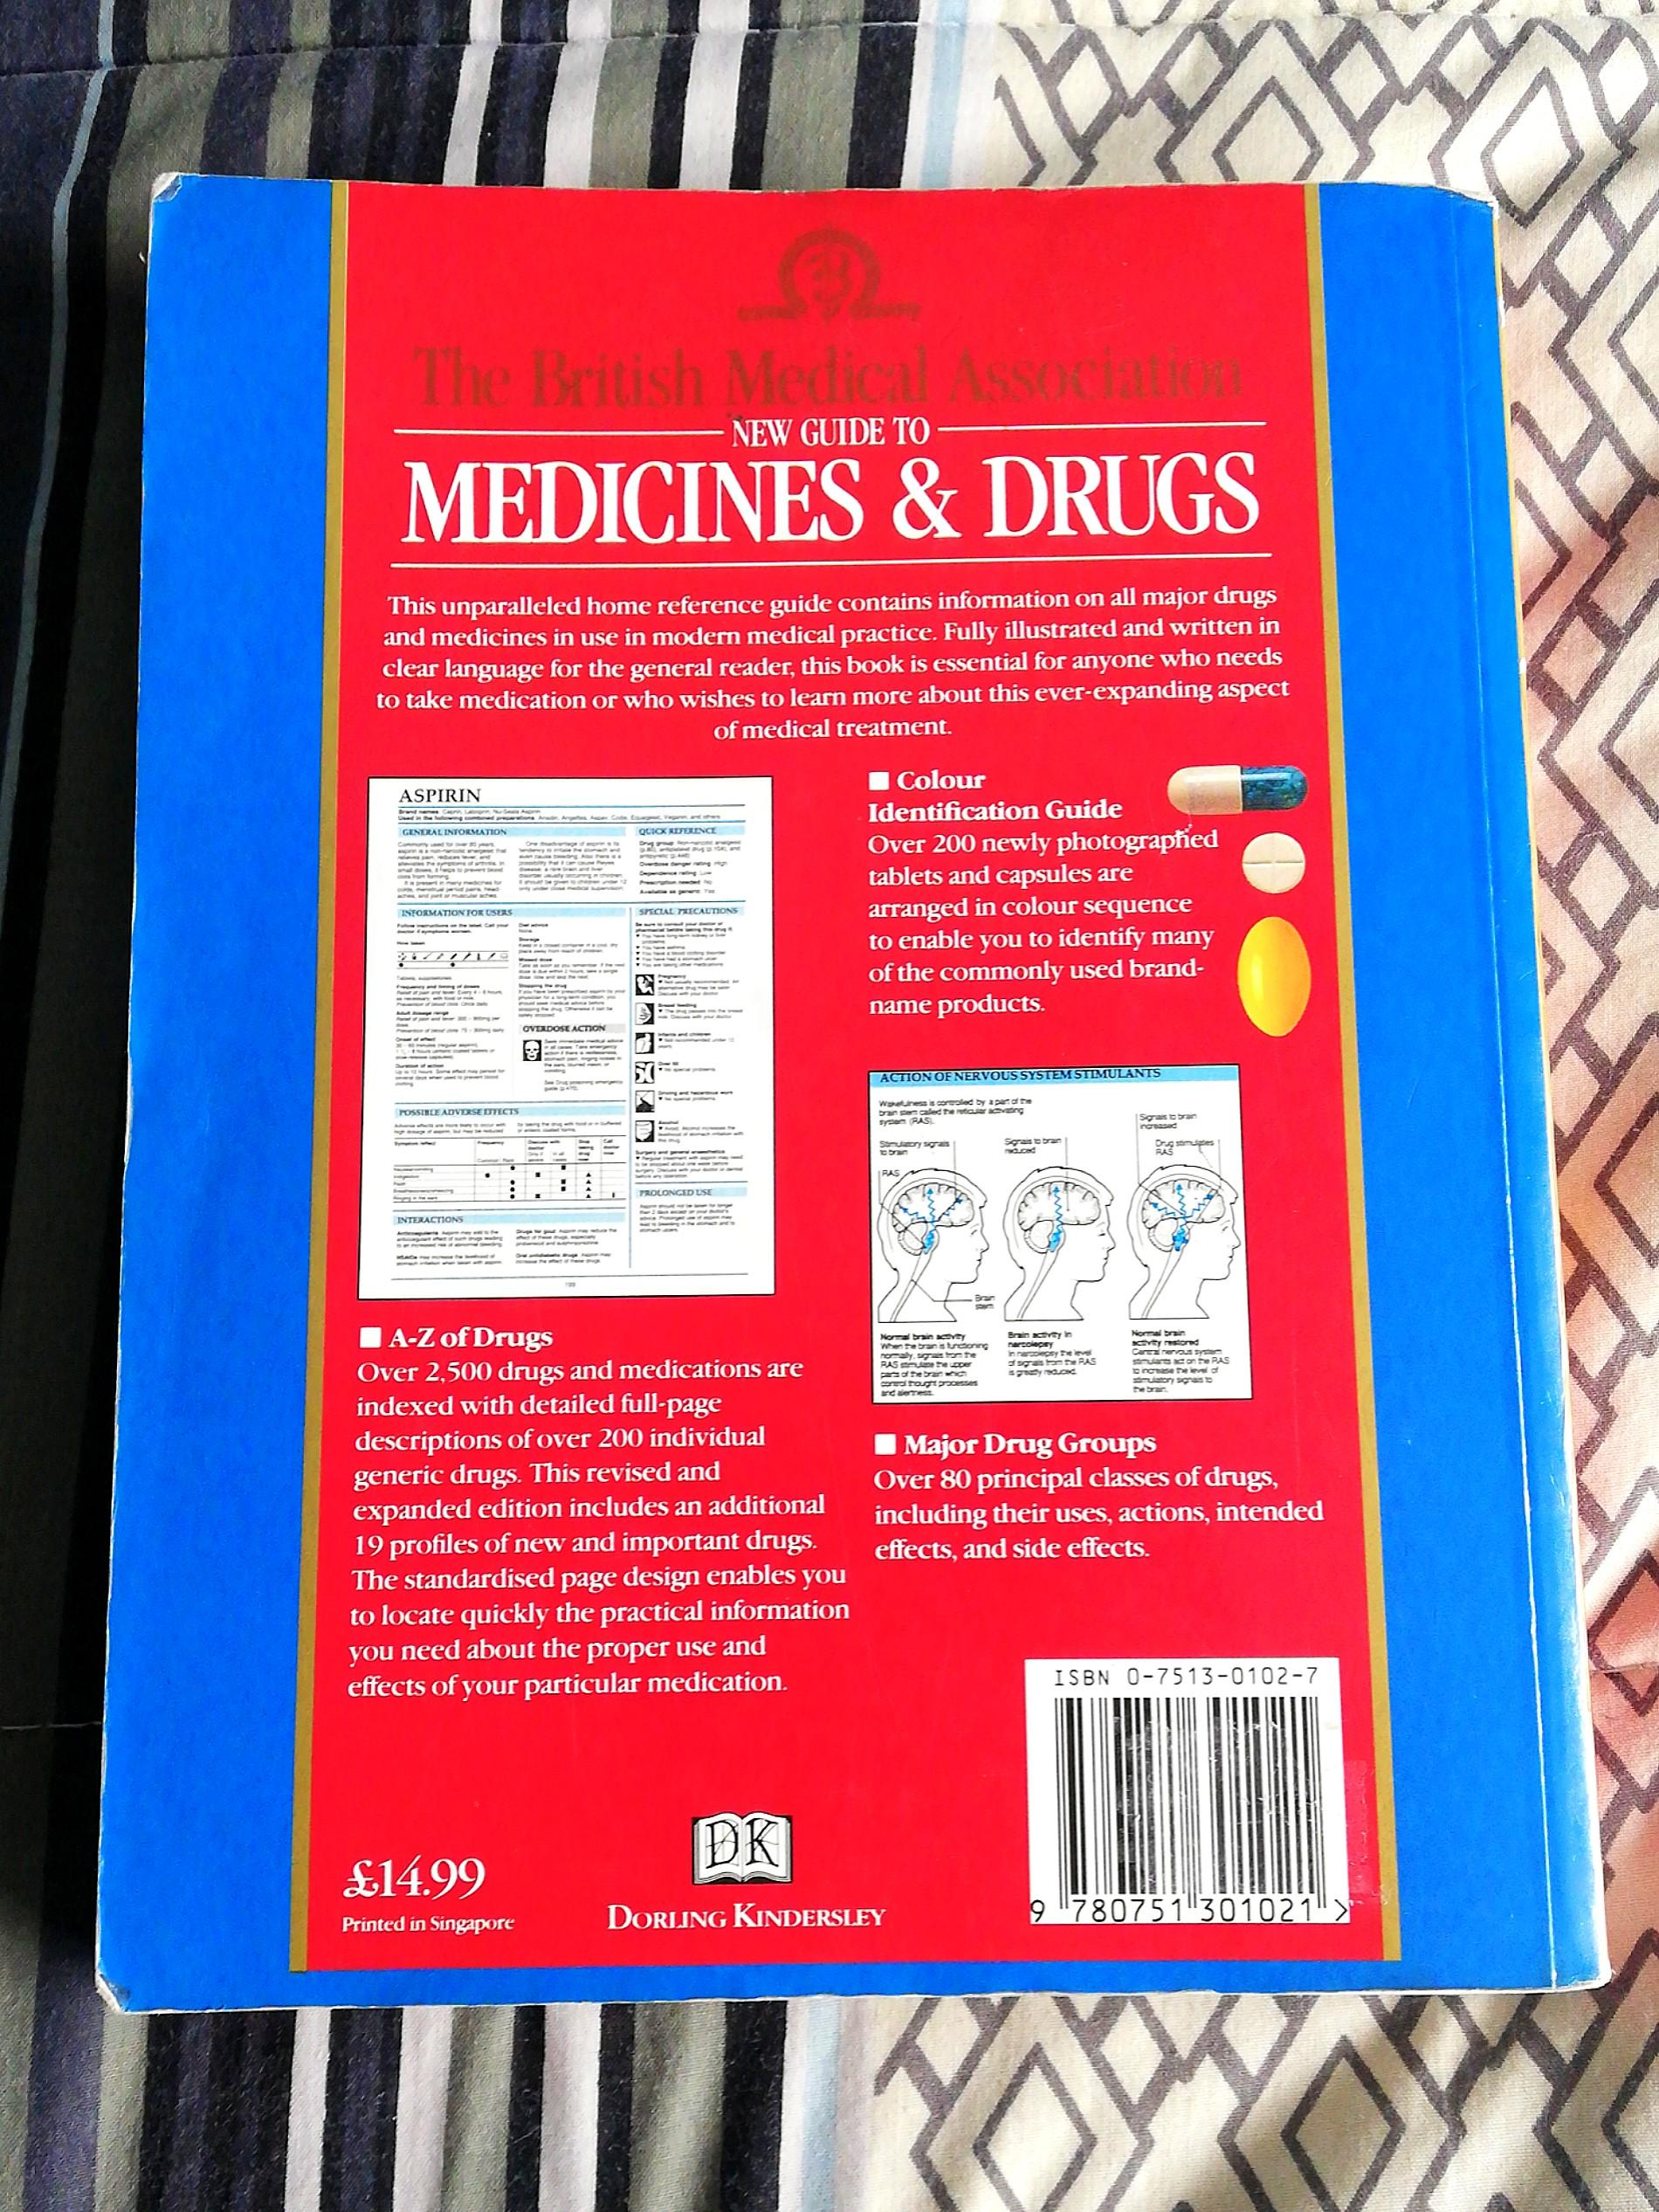 (Over 2,500 prescription medications!!) TBMA's New Guide to Medicines and Drugs